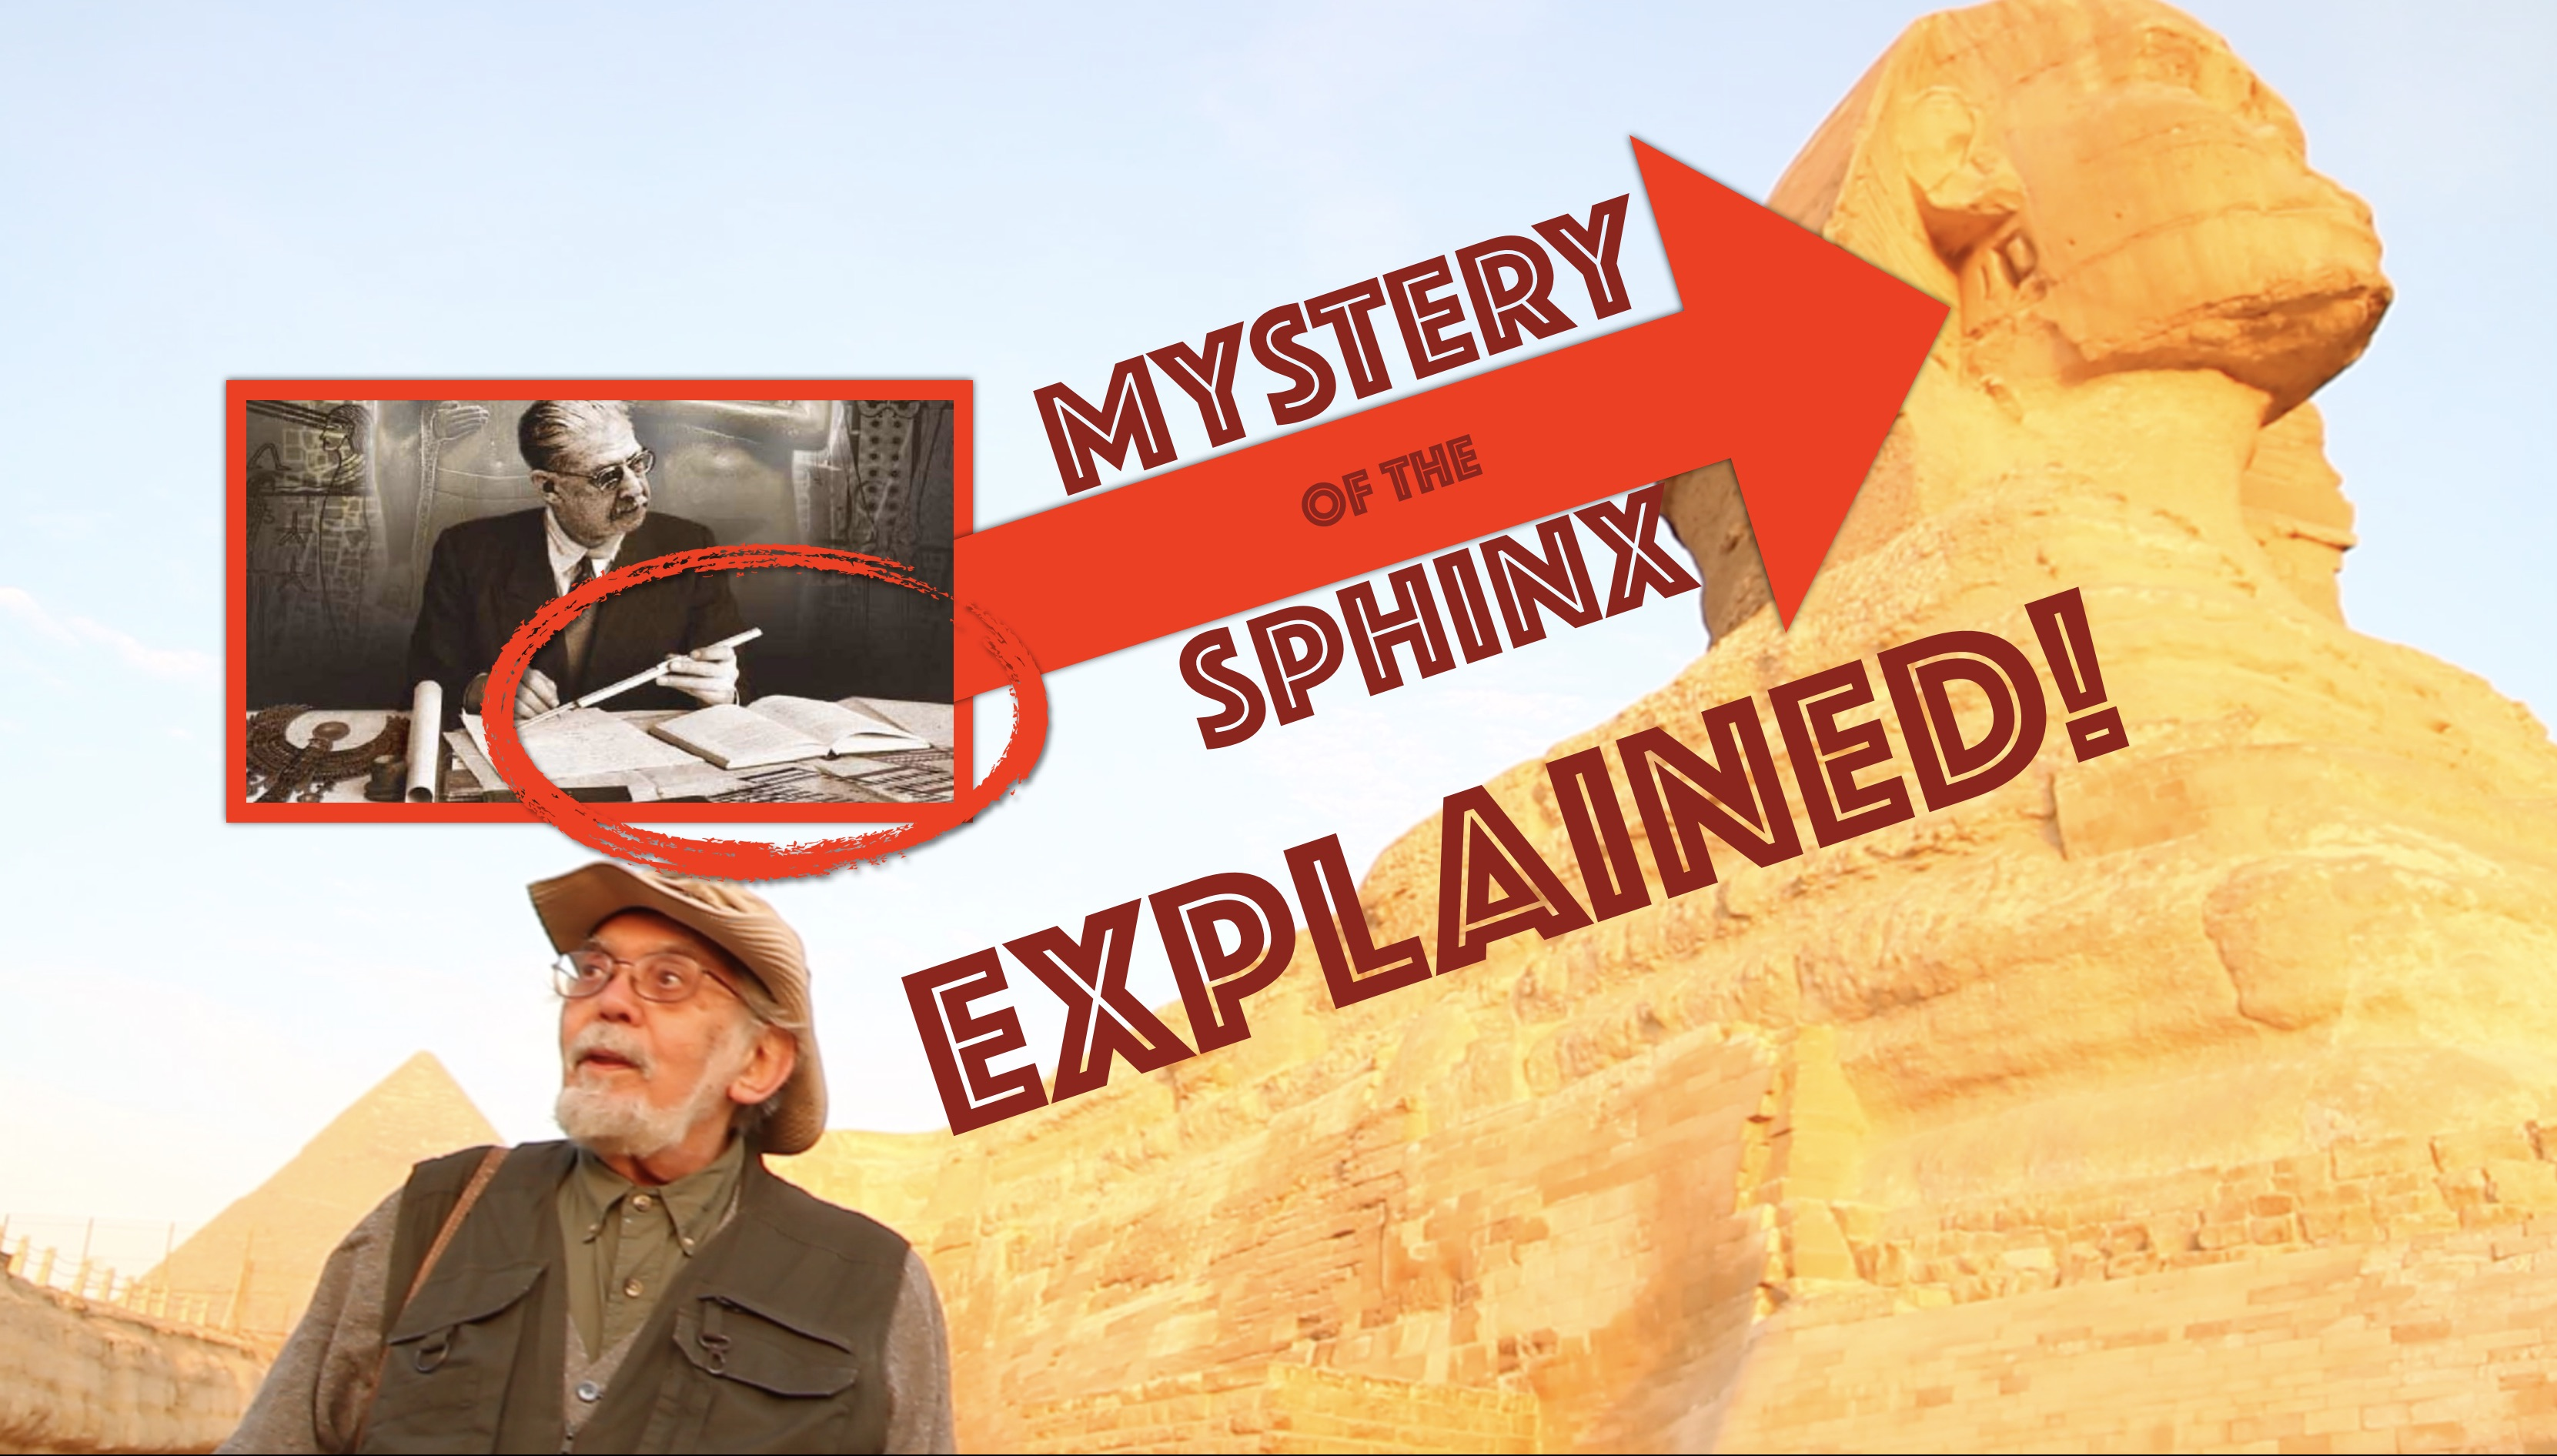 John Anthony West Mystery of the Sphinx Explained in Egypt!